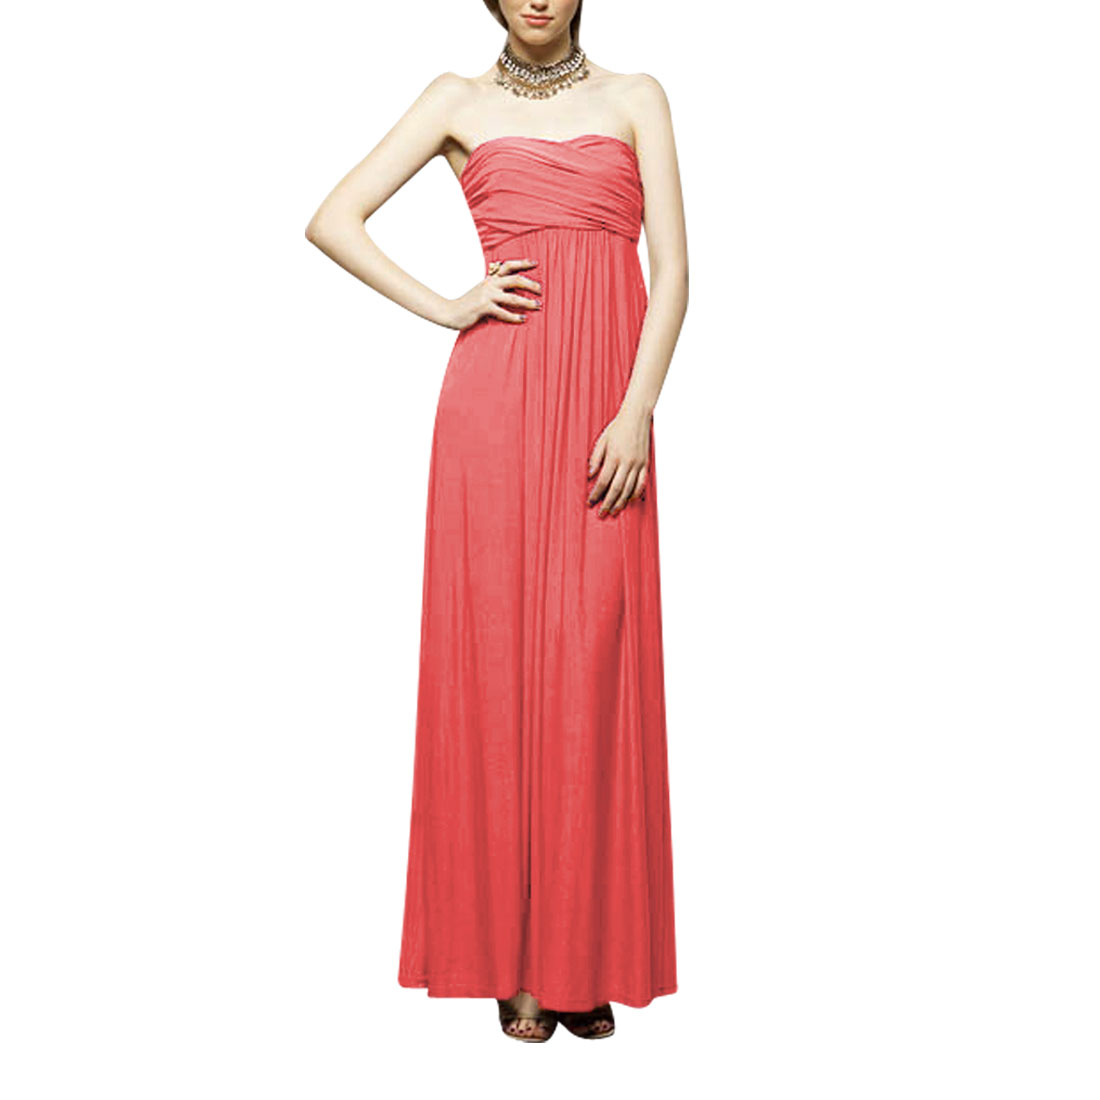 Strapless Cocktail Party Lining Full-length Zip up Dress Watermelon Red XS for Ladies